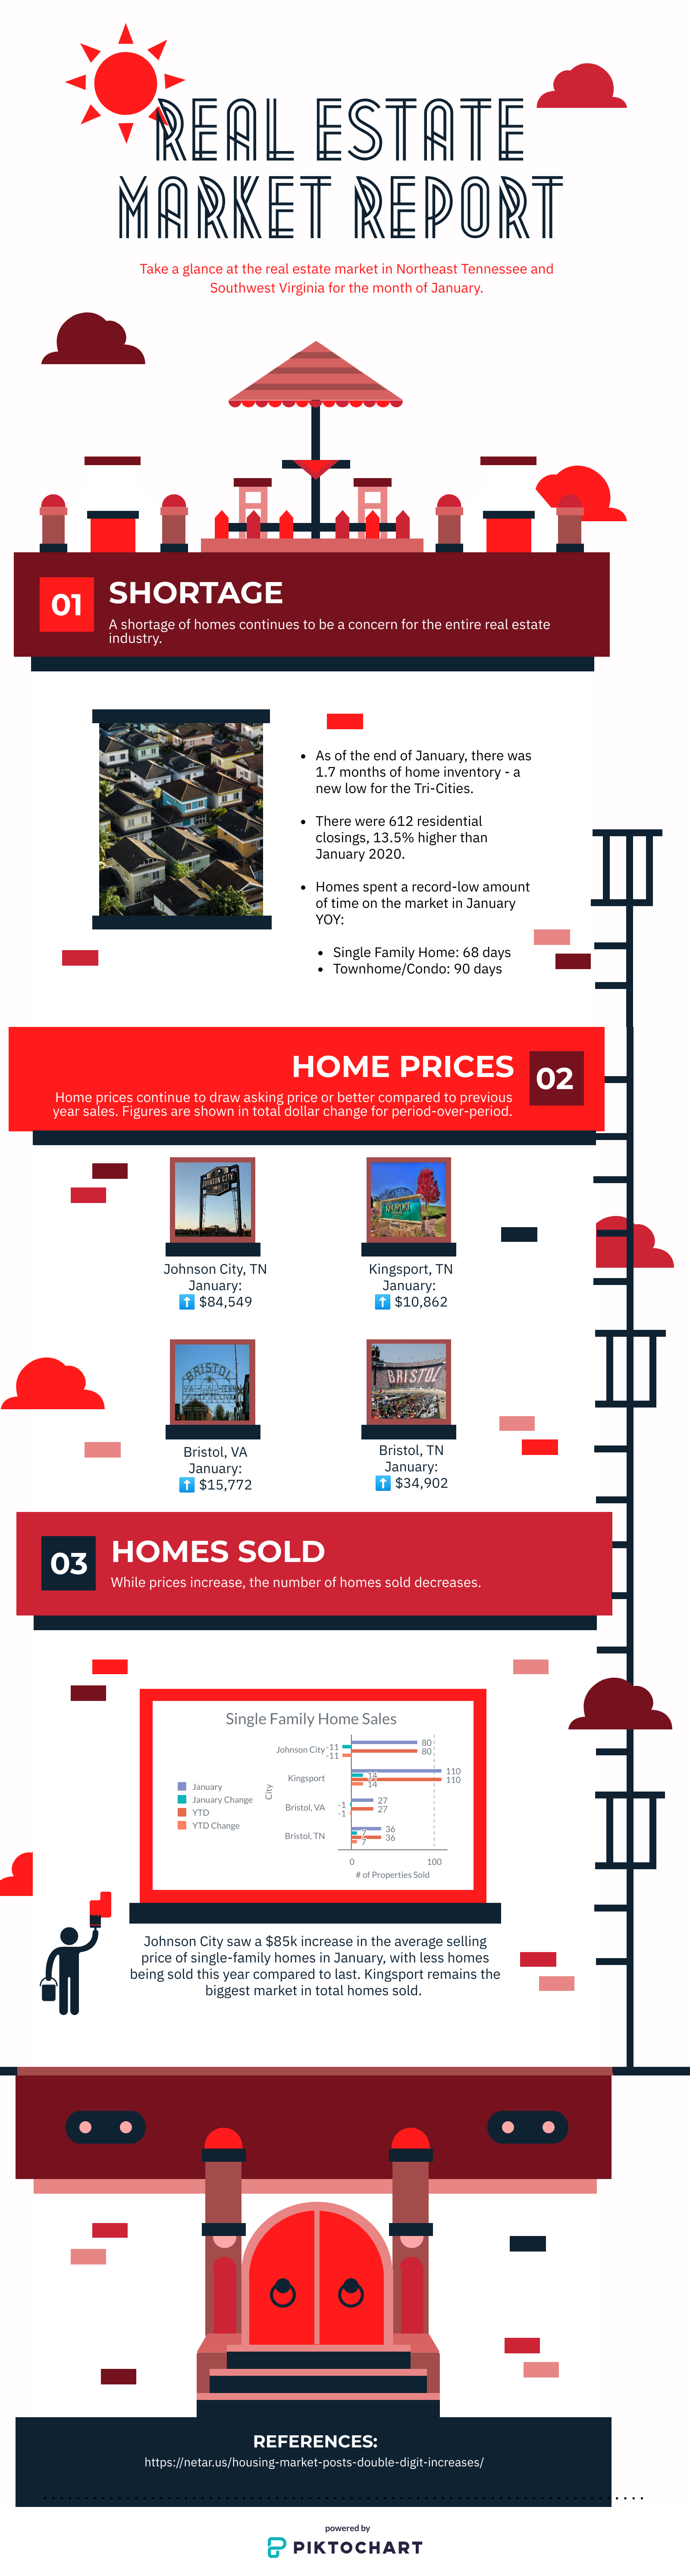 tri cities january real estate market update for johnson city, kingsport, bristol